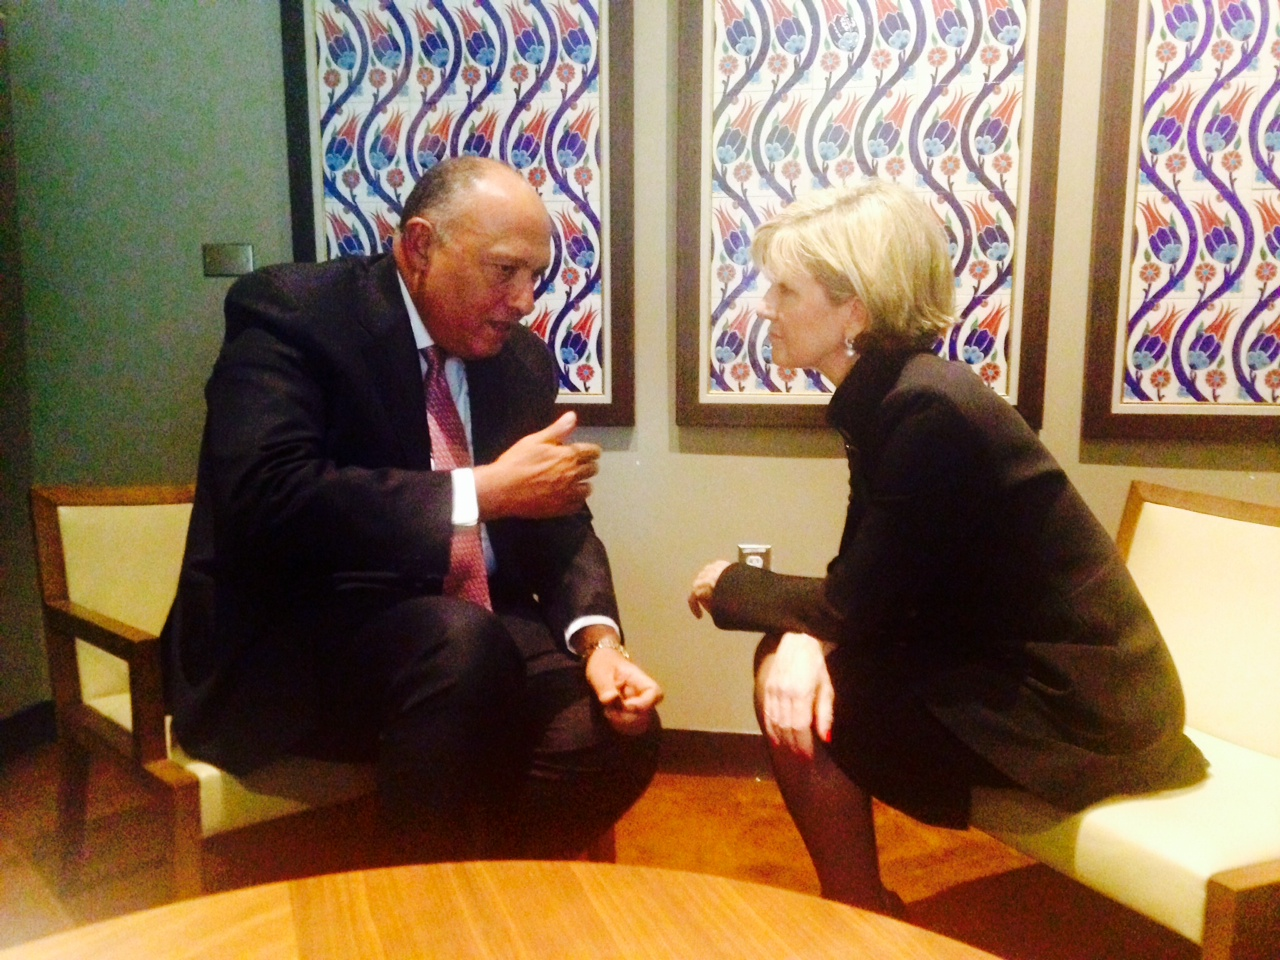 Julie Bishop meets with Egyptian Foreign Minister, Sameh Hassan Shoukry, at the United Nations in New York on 19 September 2014. (Trevor Collens/DFAT)